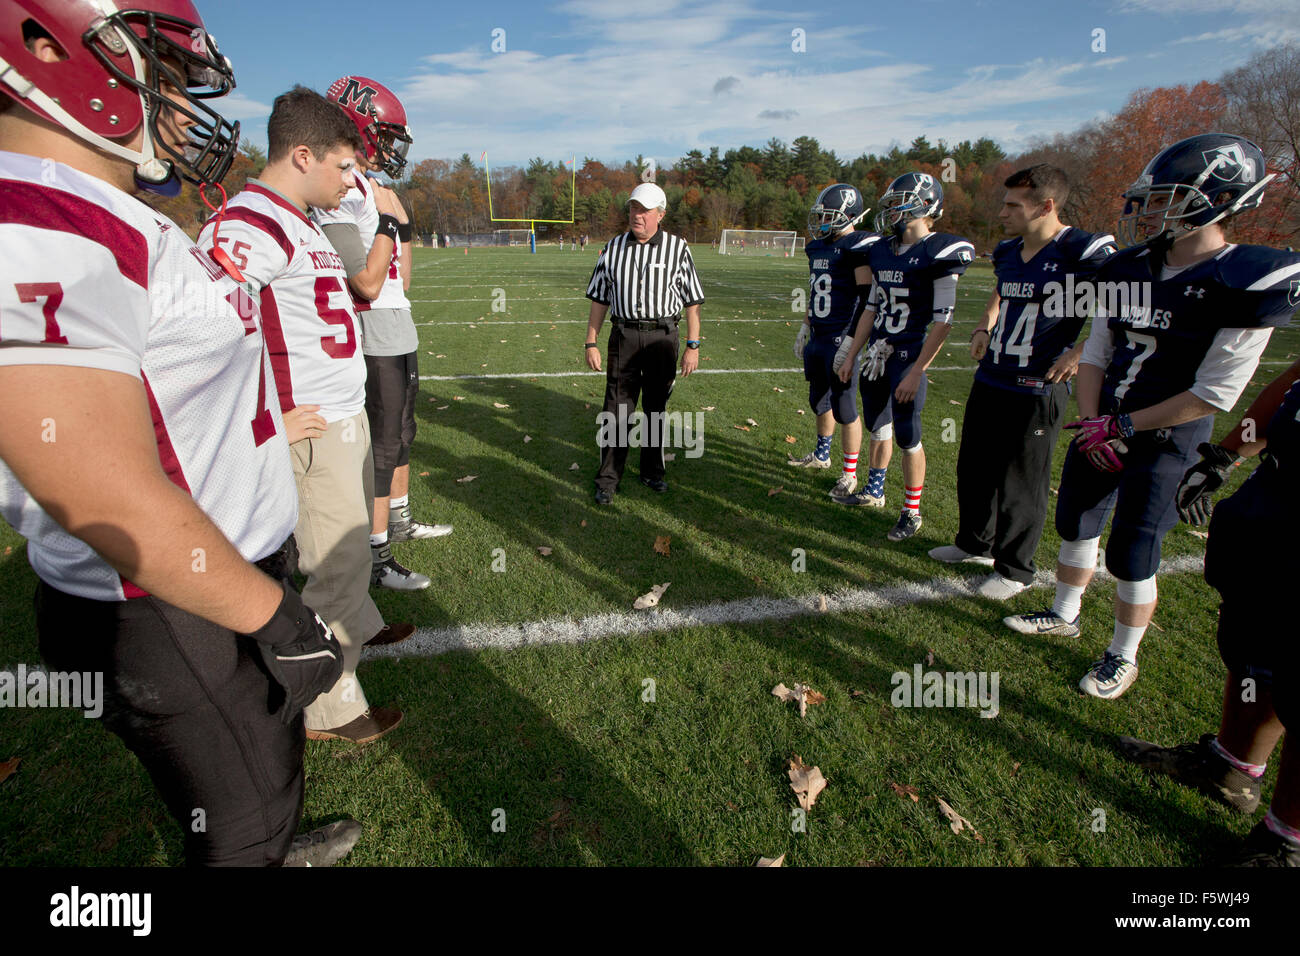 High School football players with a referee - Stock Image